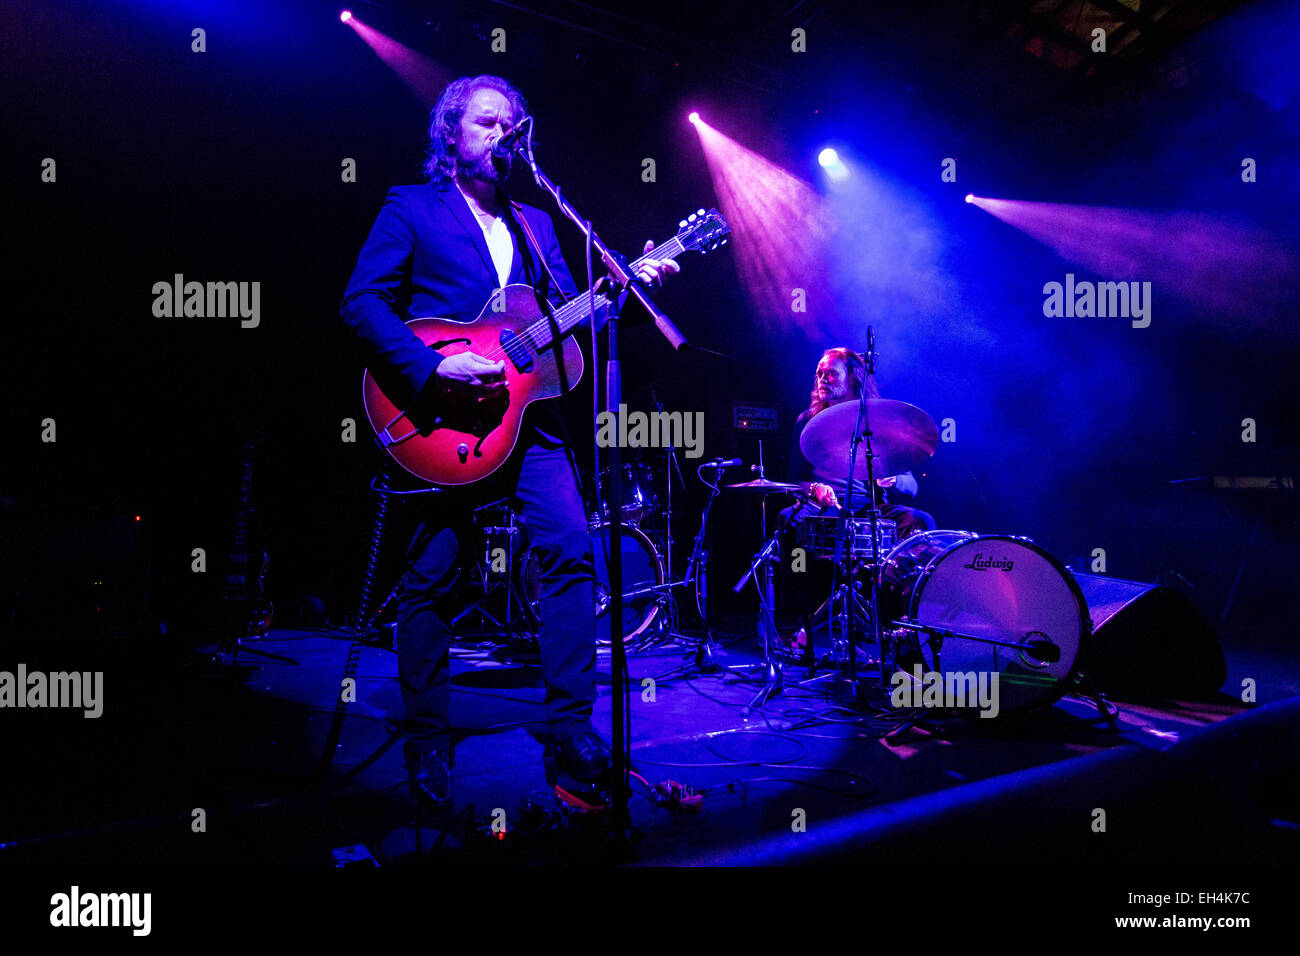 ef412c30446b DUKE GARWOOD performs live at the music club Alcatraz opening the show of  Mark Lanegan Band Credit  Rodolfo Sassano Alamy Live News